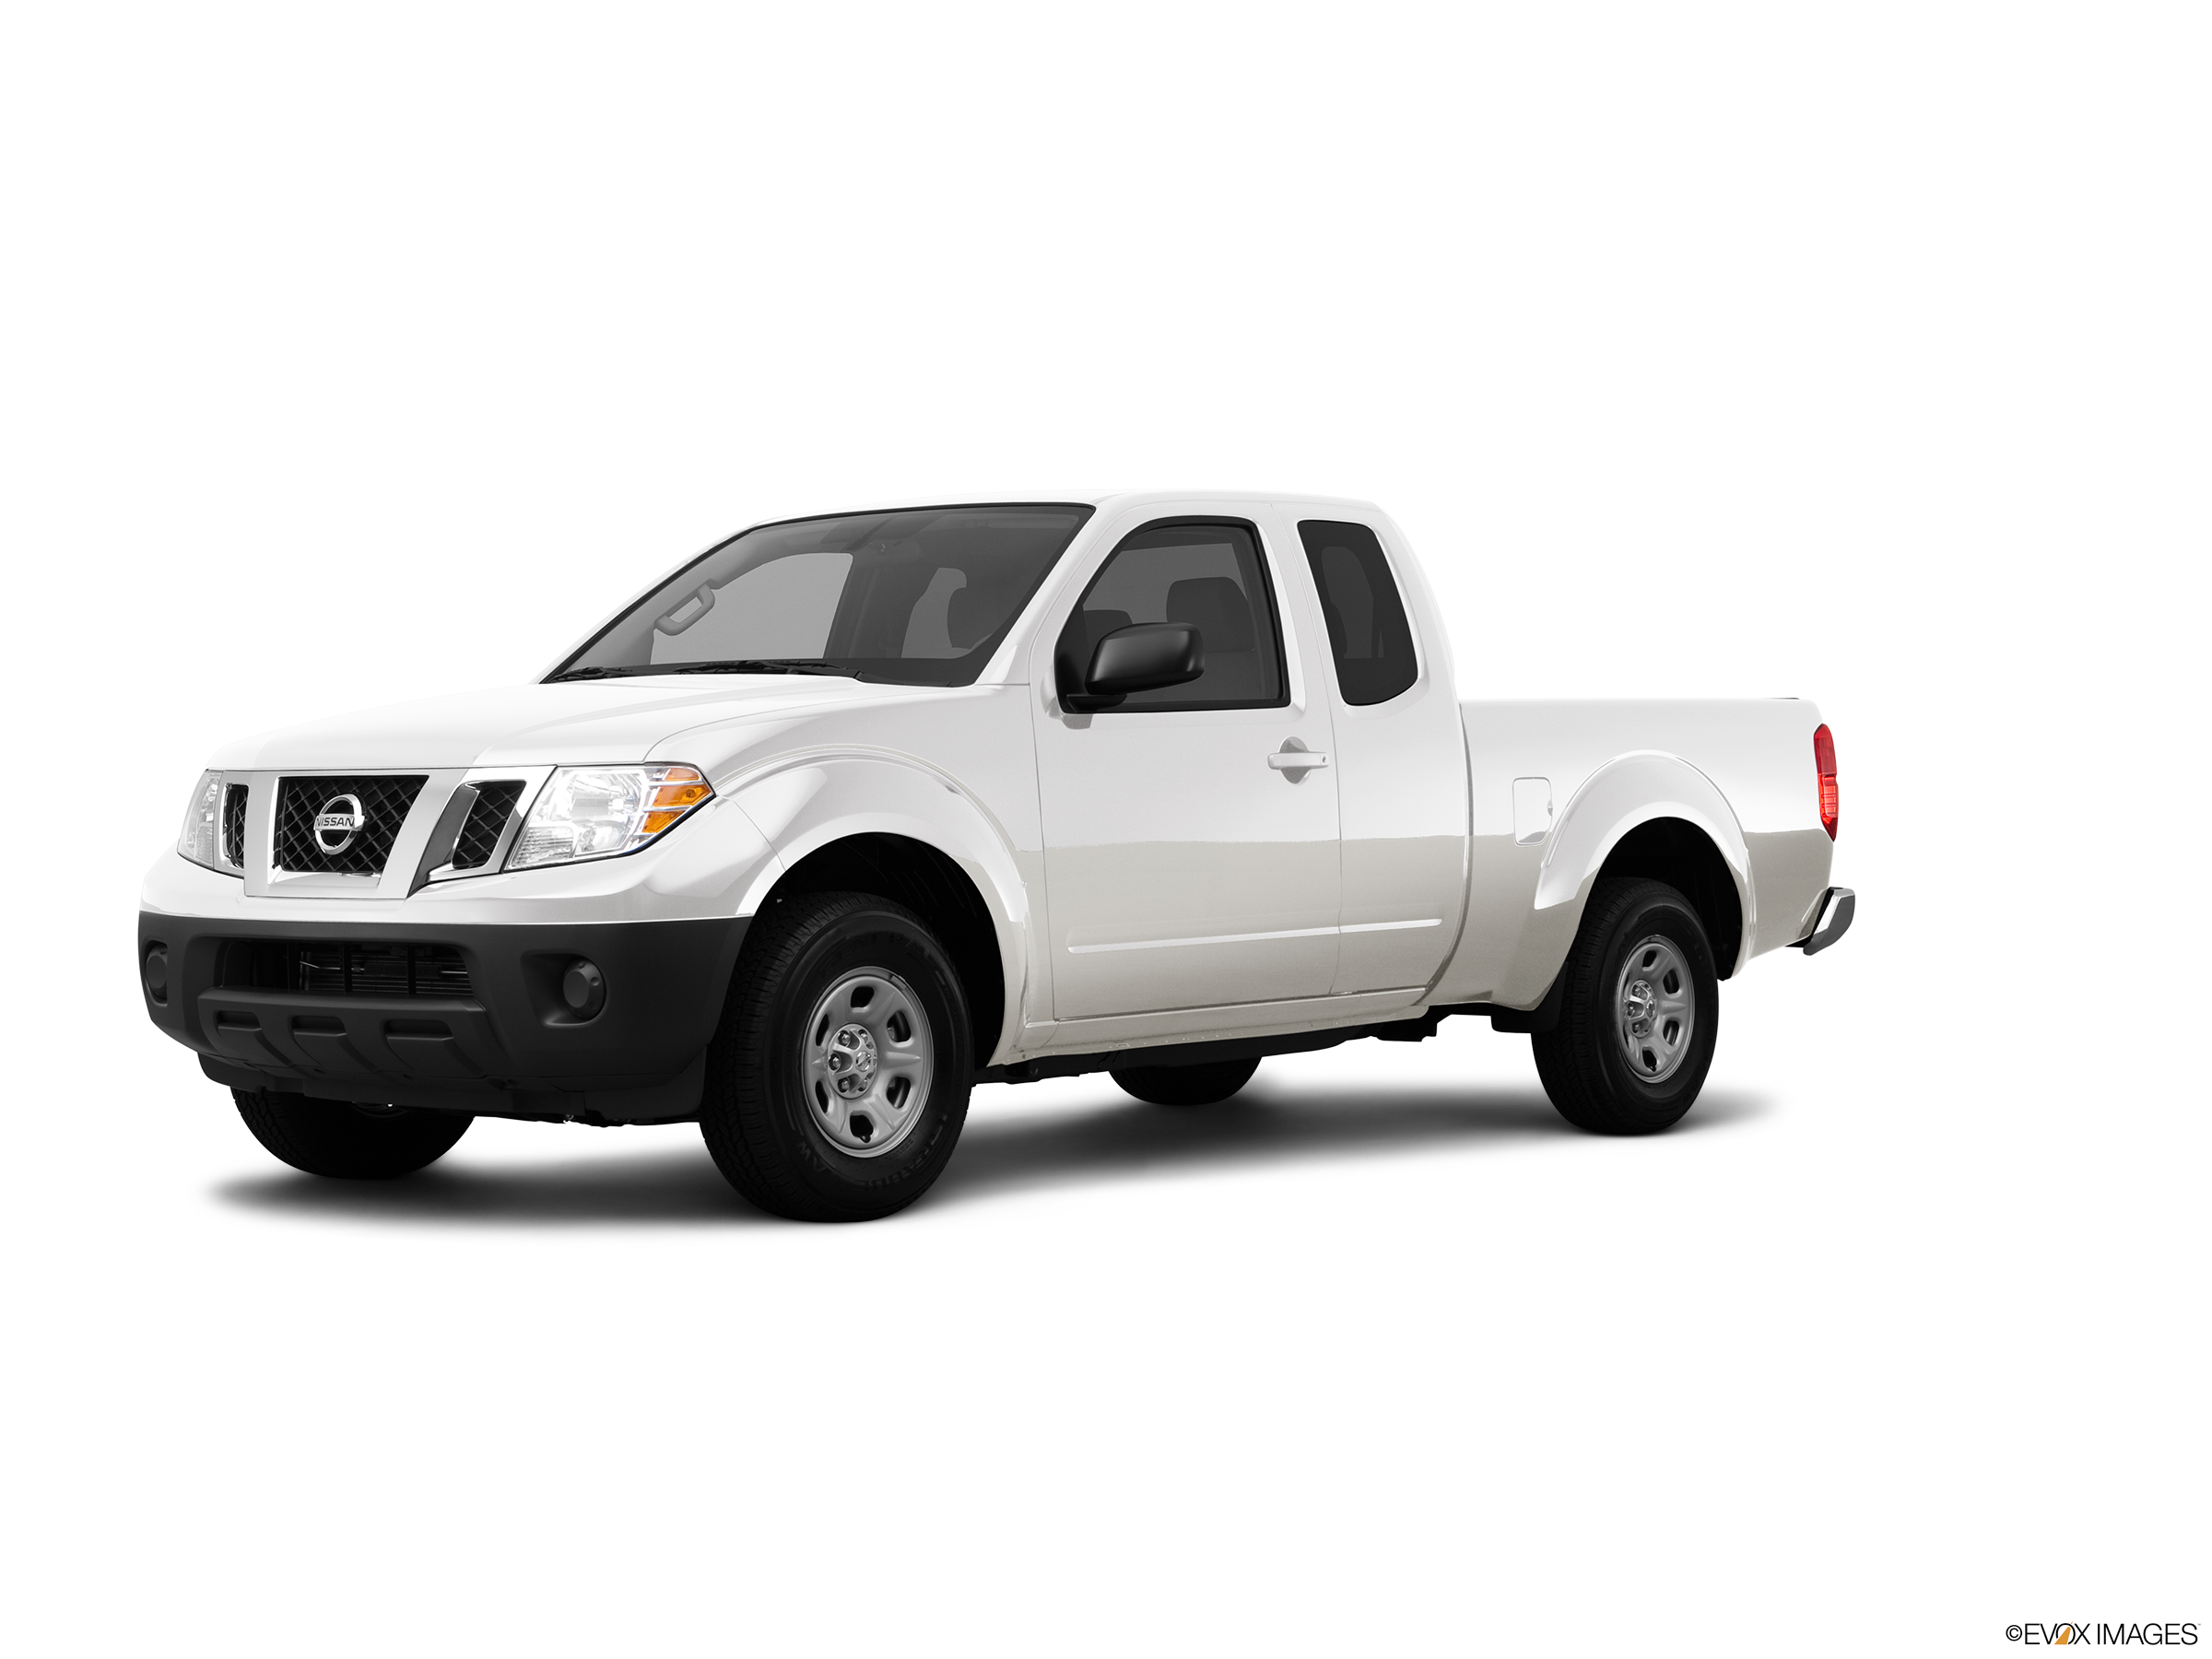 2012 Nissan Frontier Values Cars For Sale Kelley Blue Book